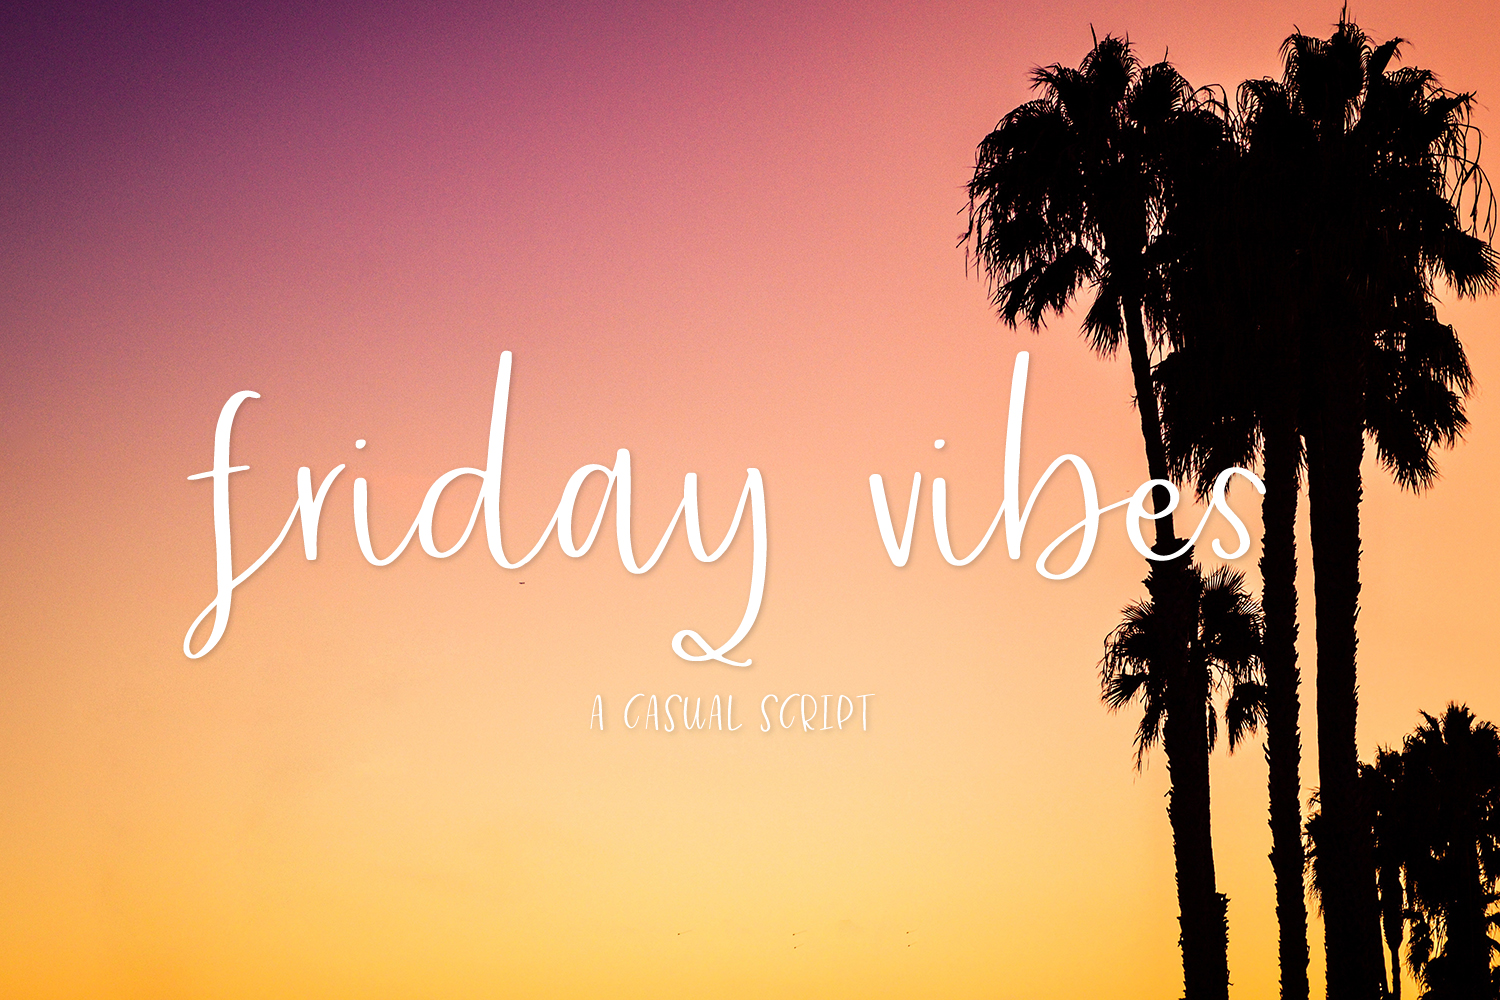 Friday Vibes Script example image 1